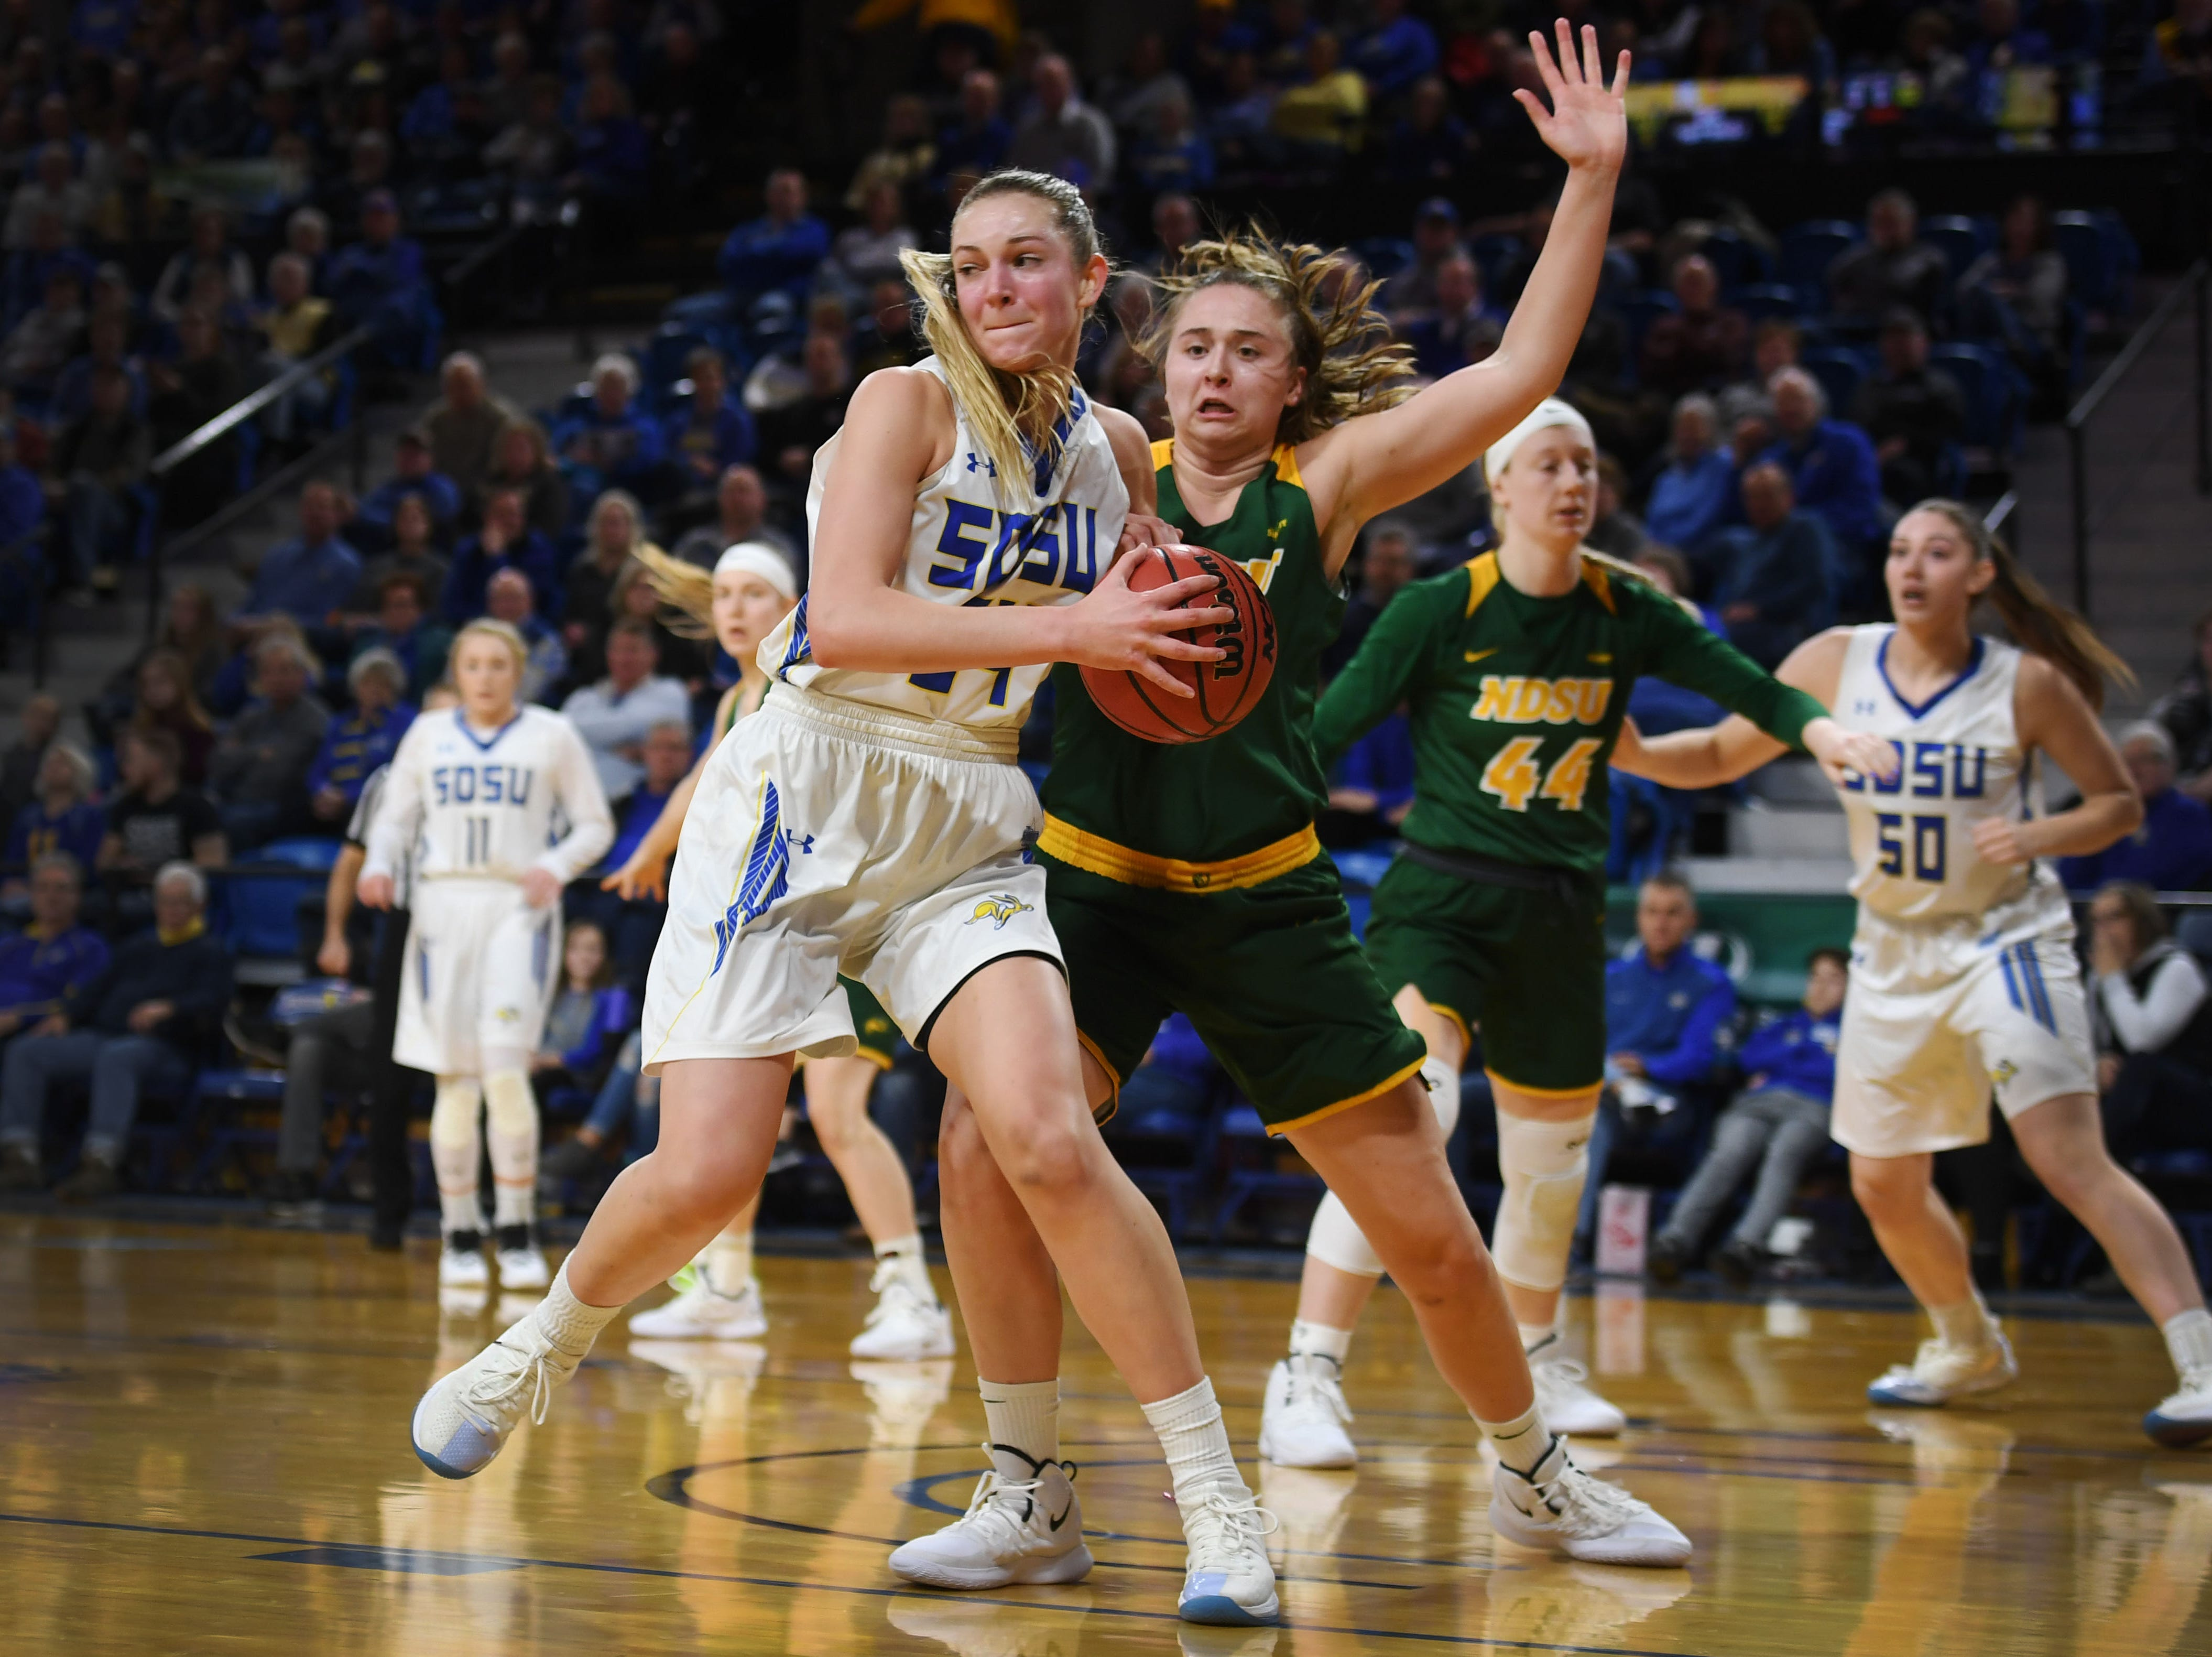 SDSU's Tagyn Larson goes against NDSU defense during the game Wednesday, Jan. 23, at Frost Arena in Brookings.